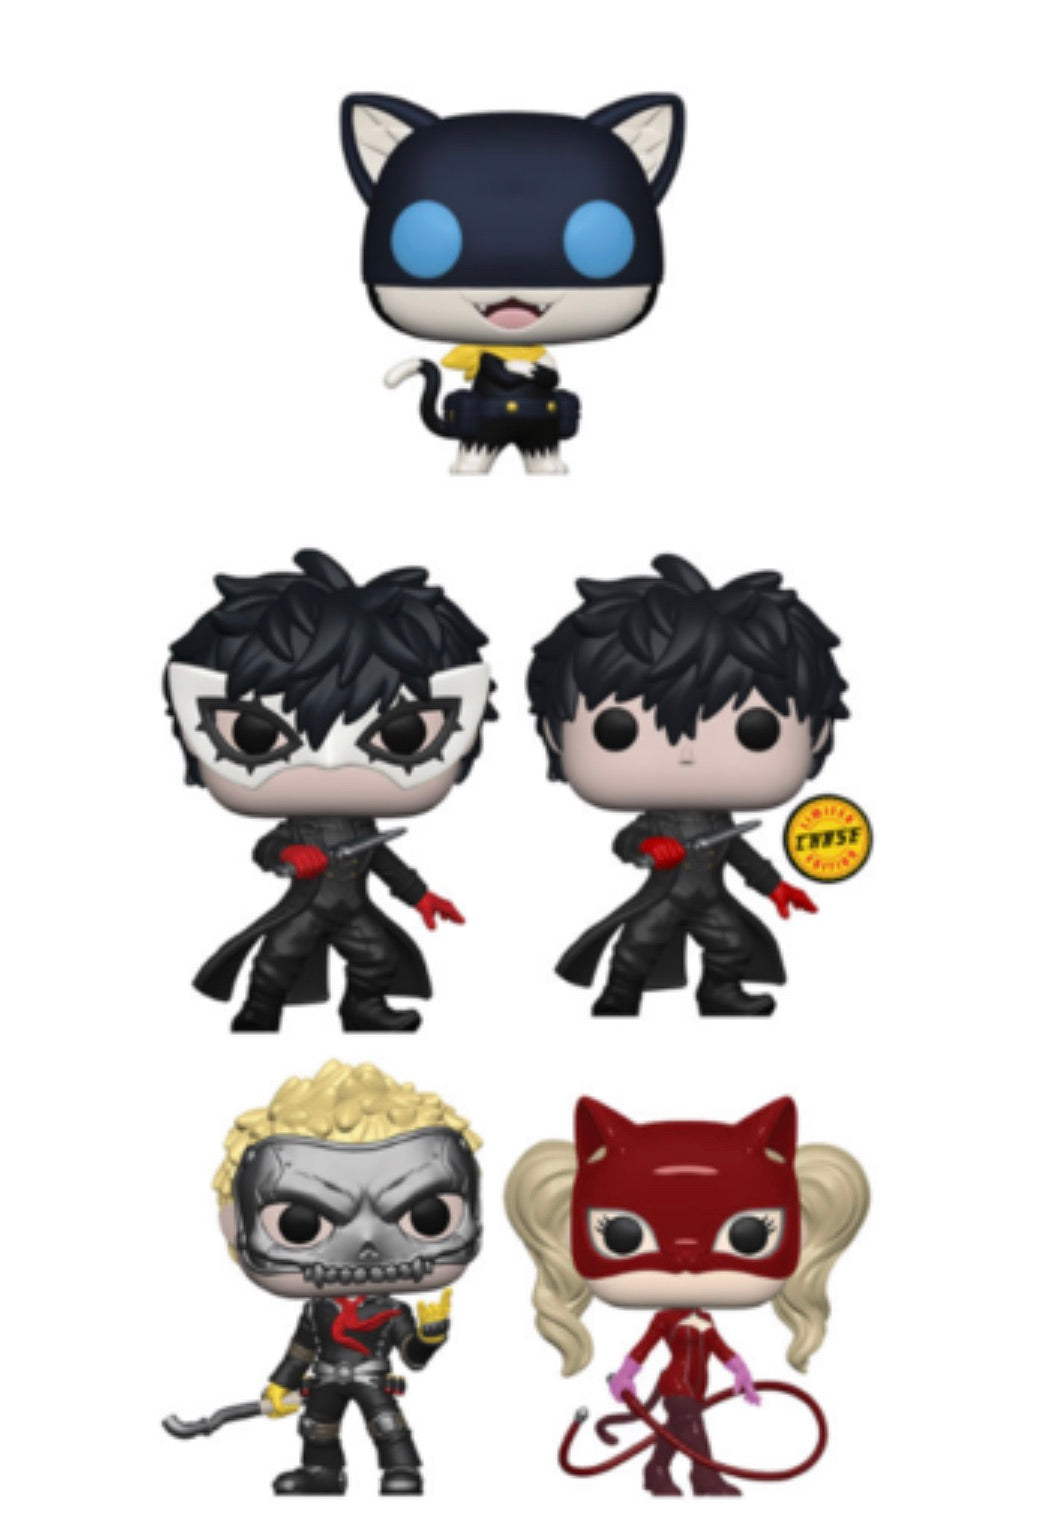 PERSONA 5 FUNKO POP! COMPLETE SET OF 5 CHASE INCLUDED (PRE-ORDER)